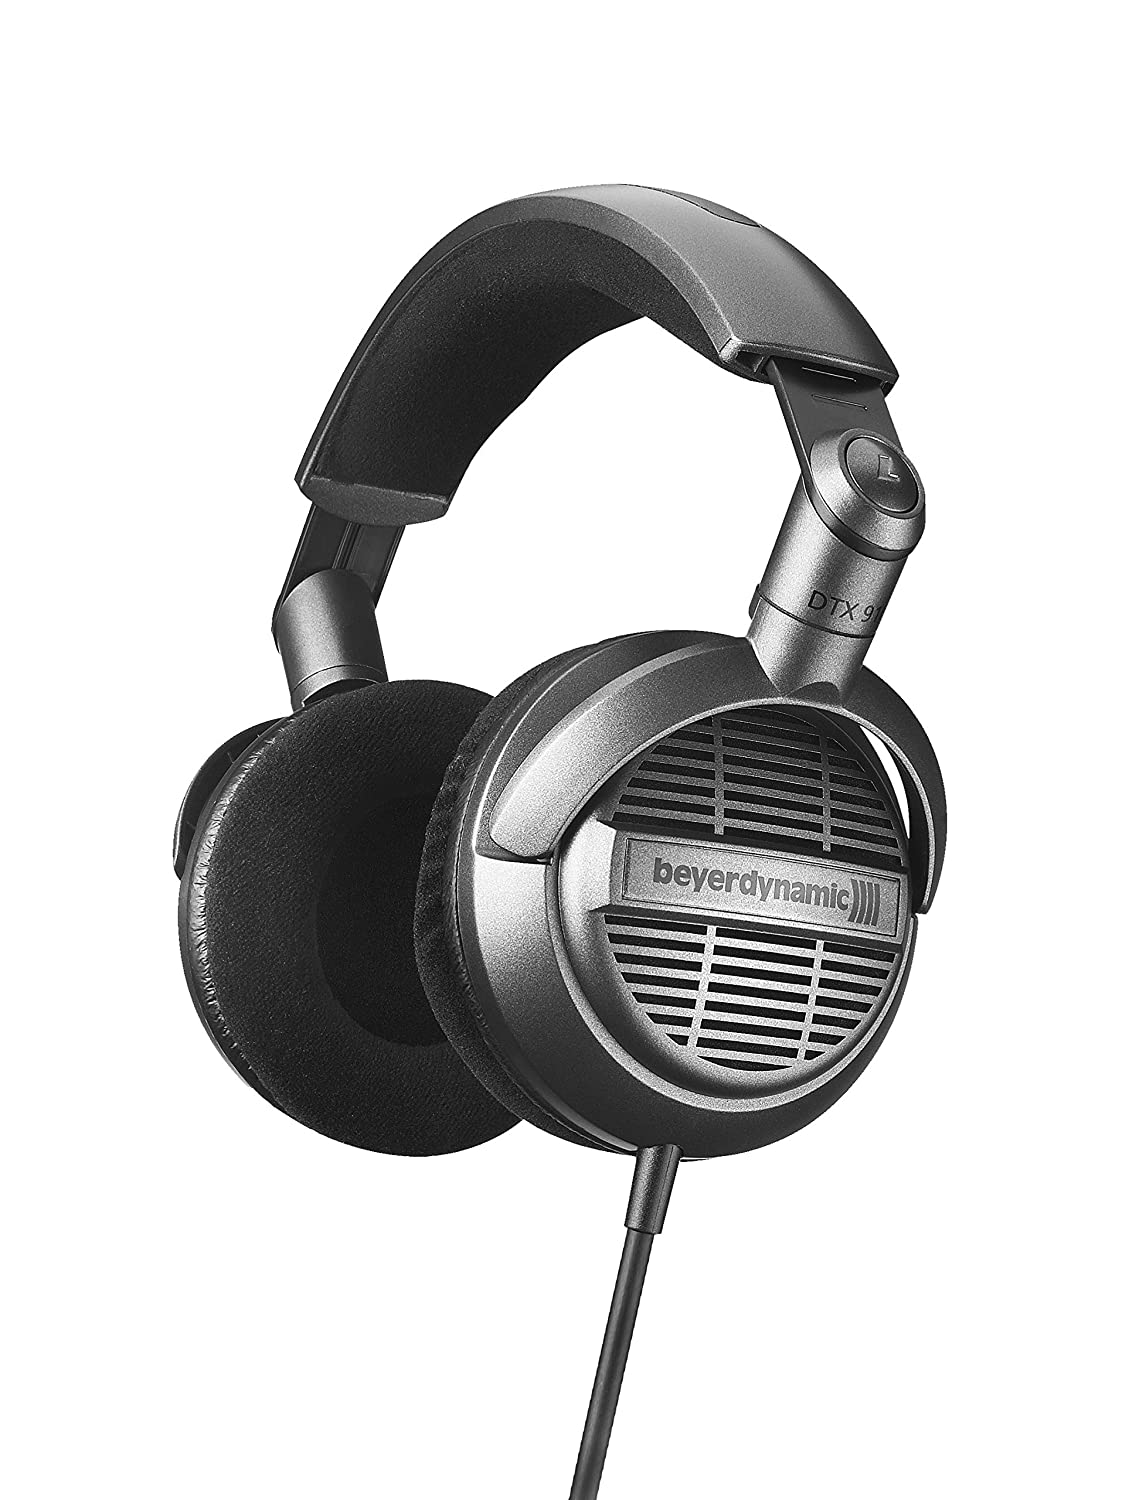 Beyerdynamic DTX 910 Stereo Headphones for Portable and Home usage (Silver Black)